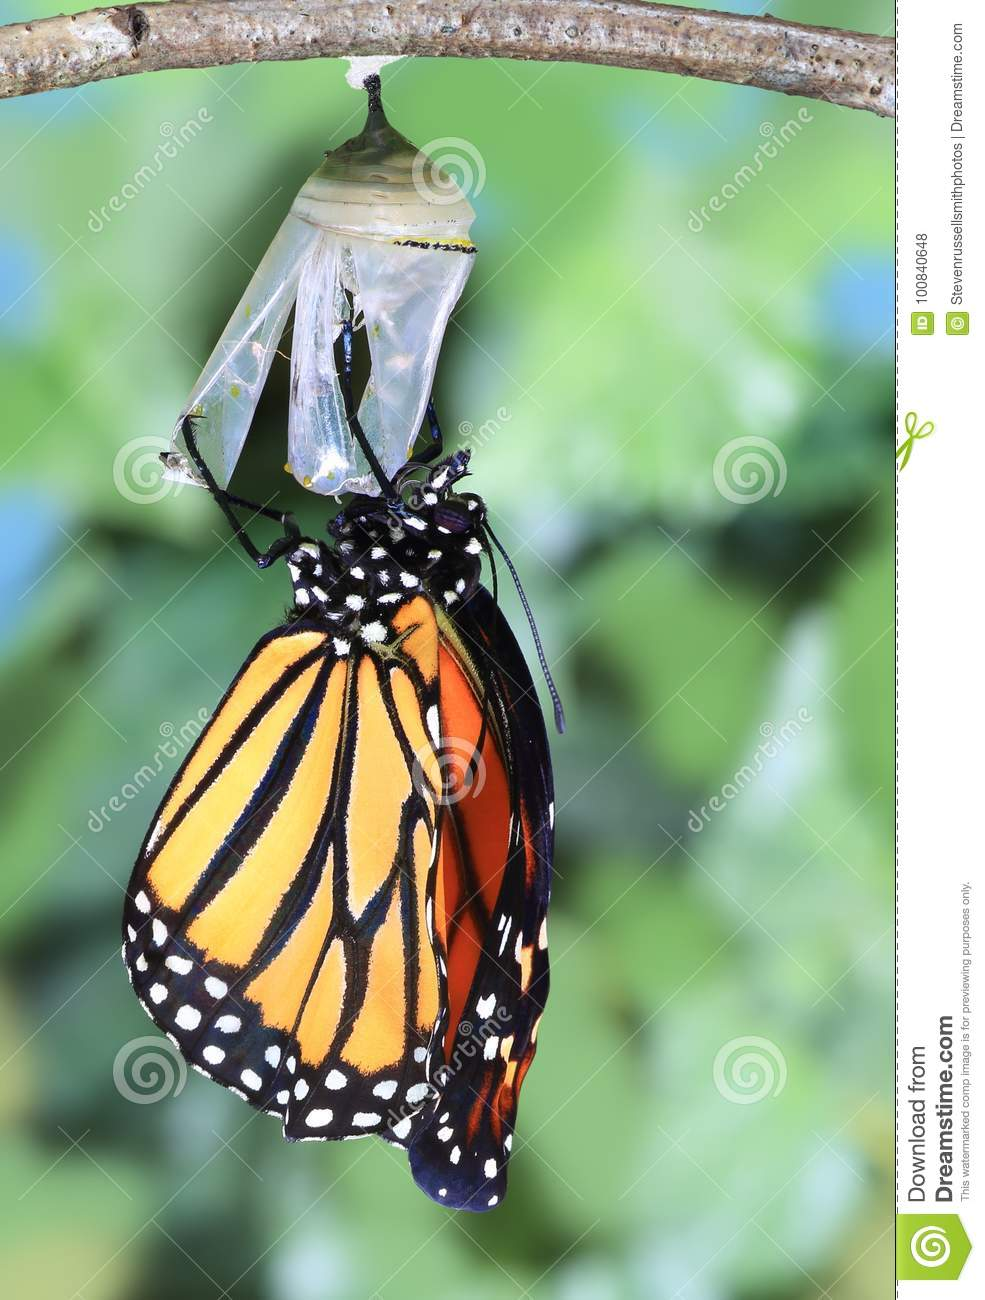 A Monarch Butterfly newly emerged.